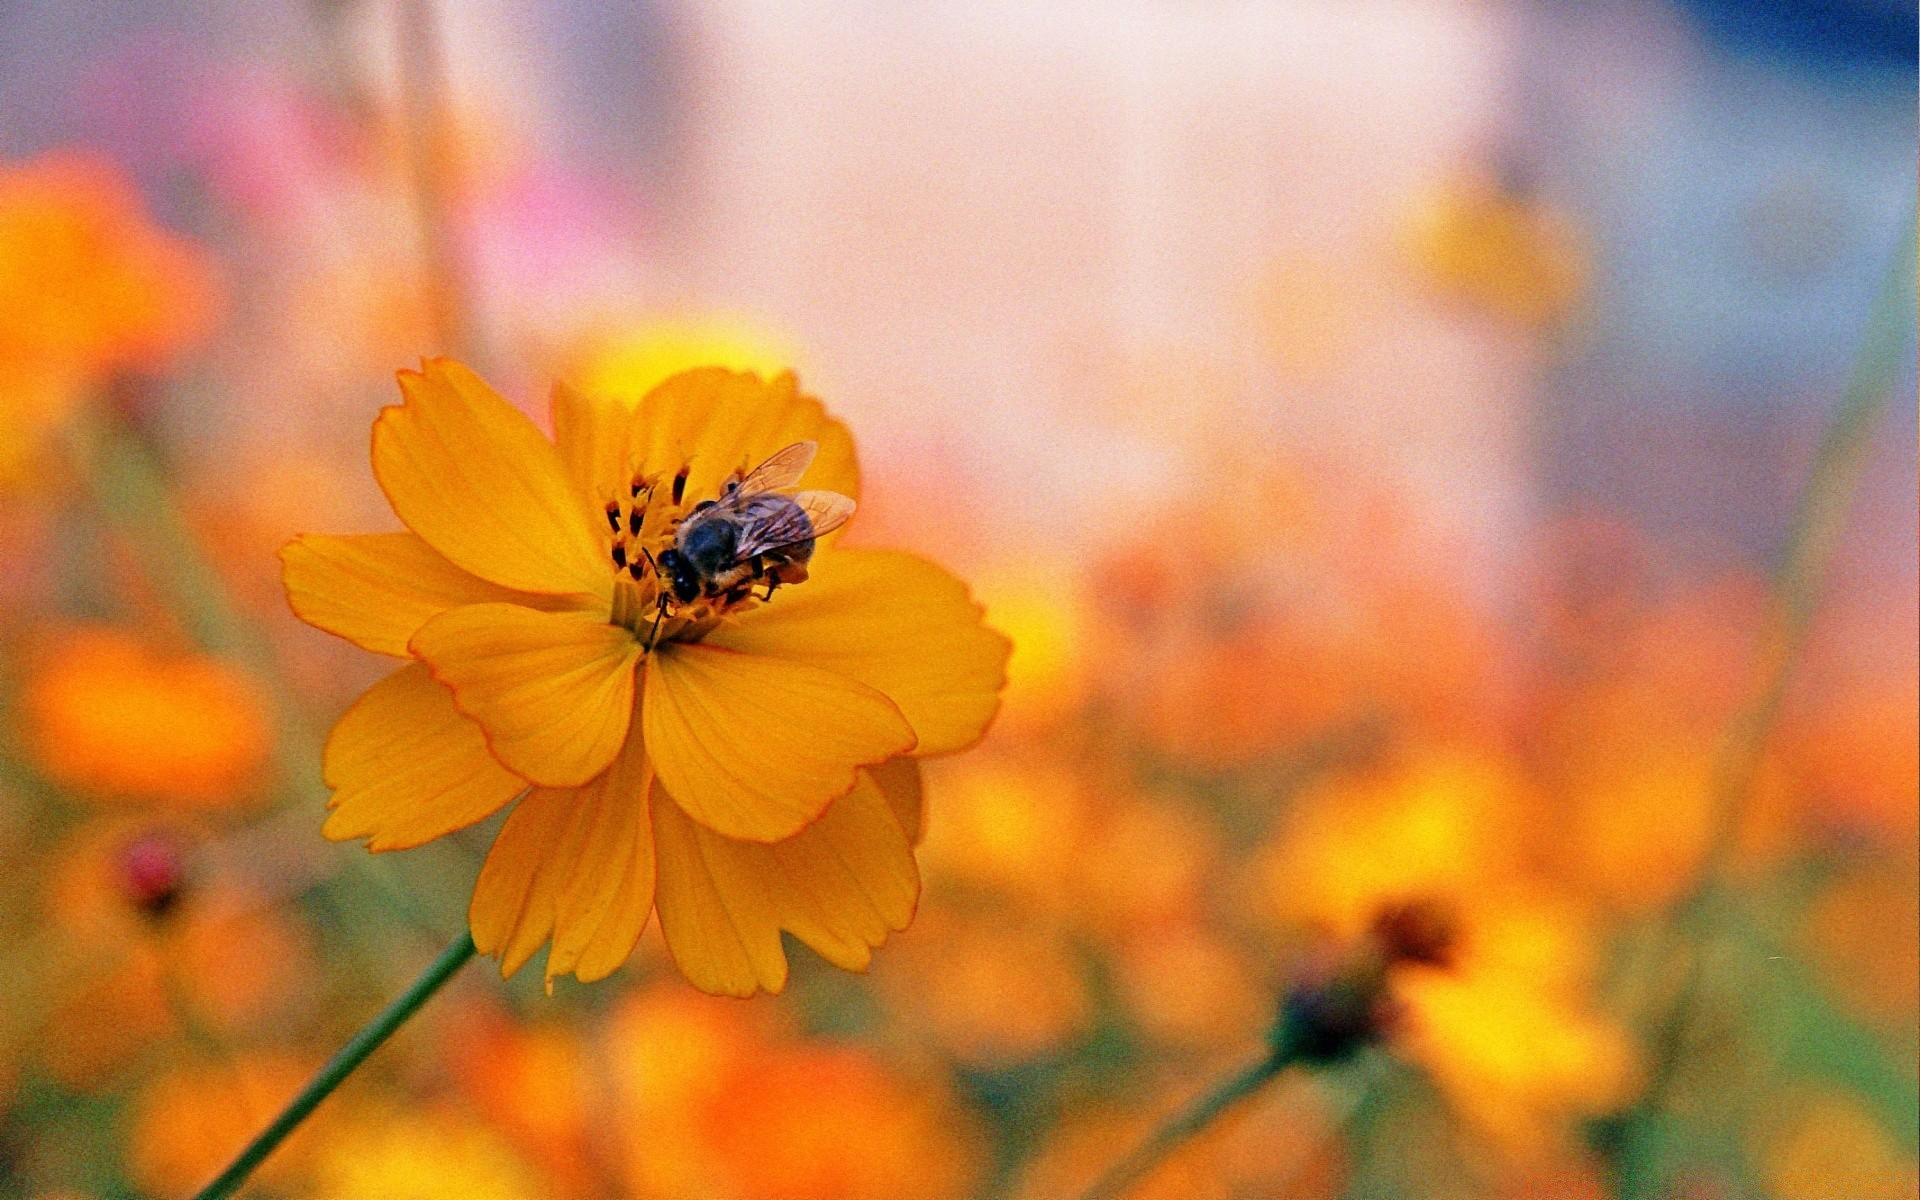 insects nature flower summer flora leaf bright outdoors garden color growth fair weather blur